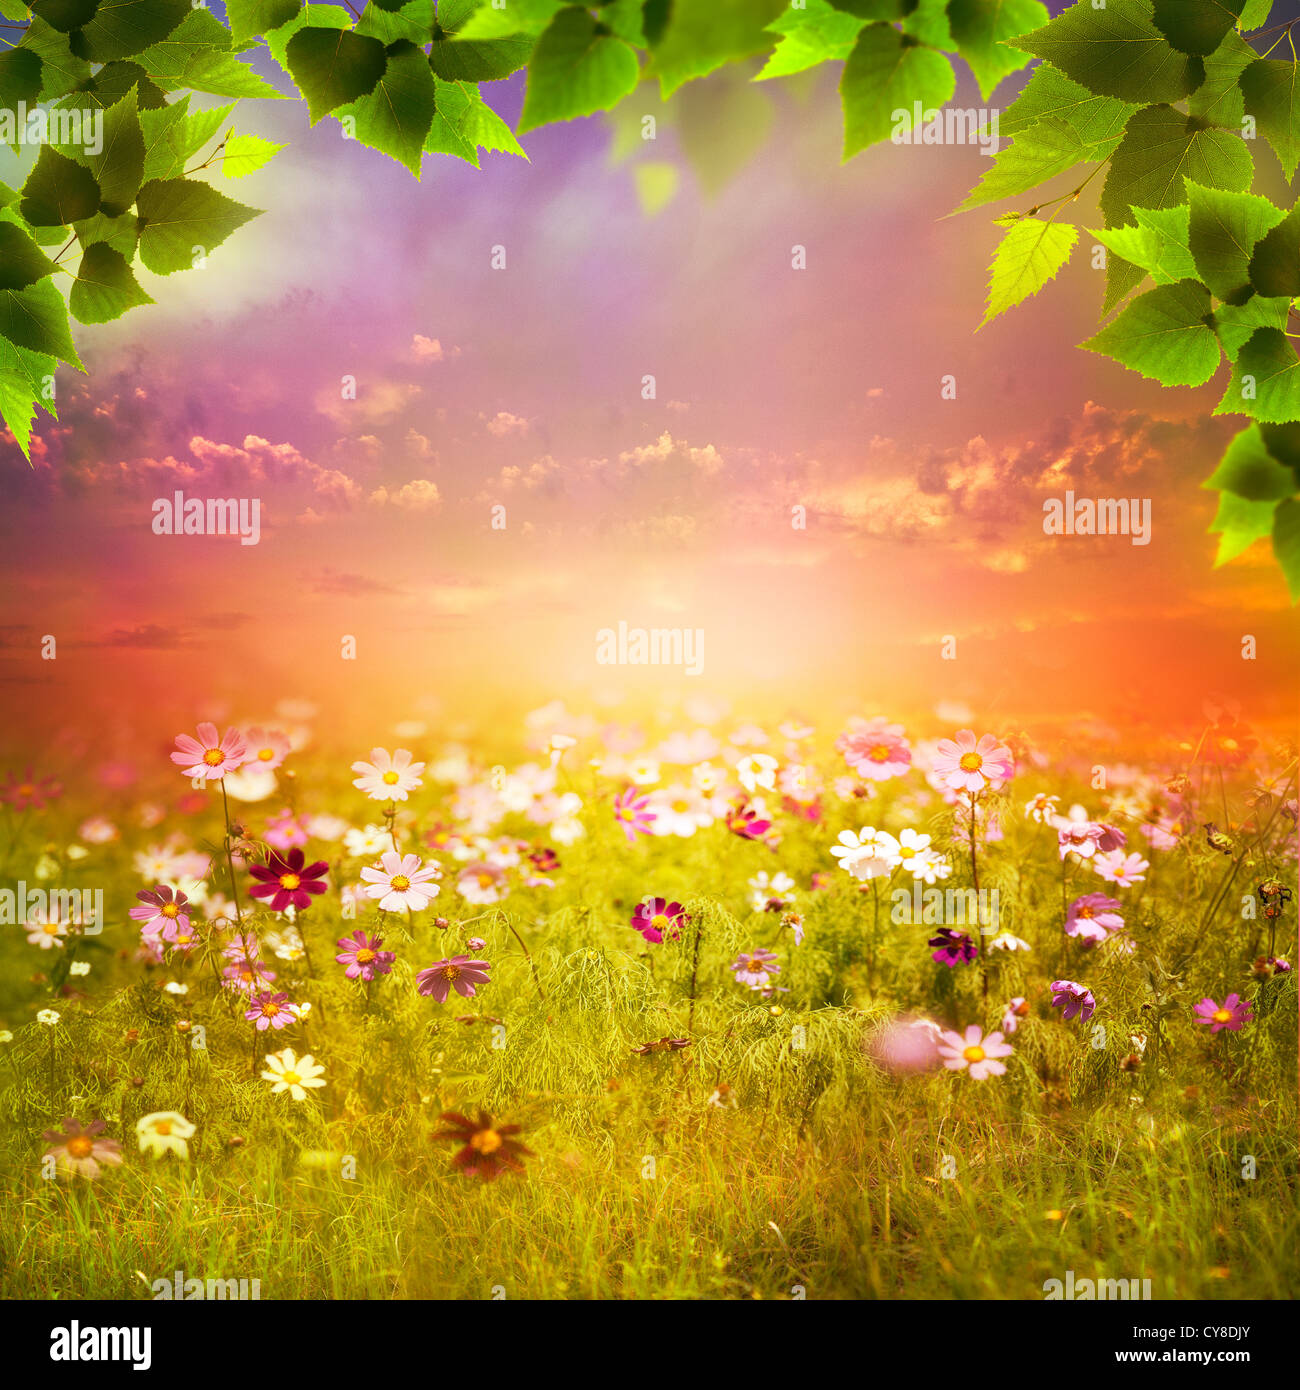 Mystical evening on the meadow. Abstract natural backgrounds for your design - Stock Image